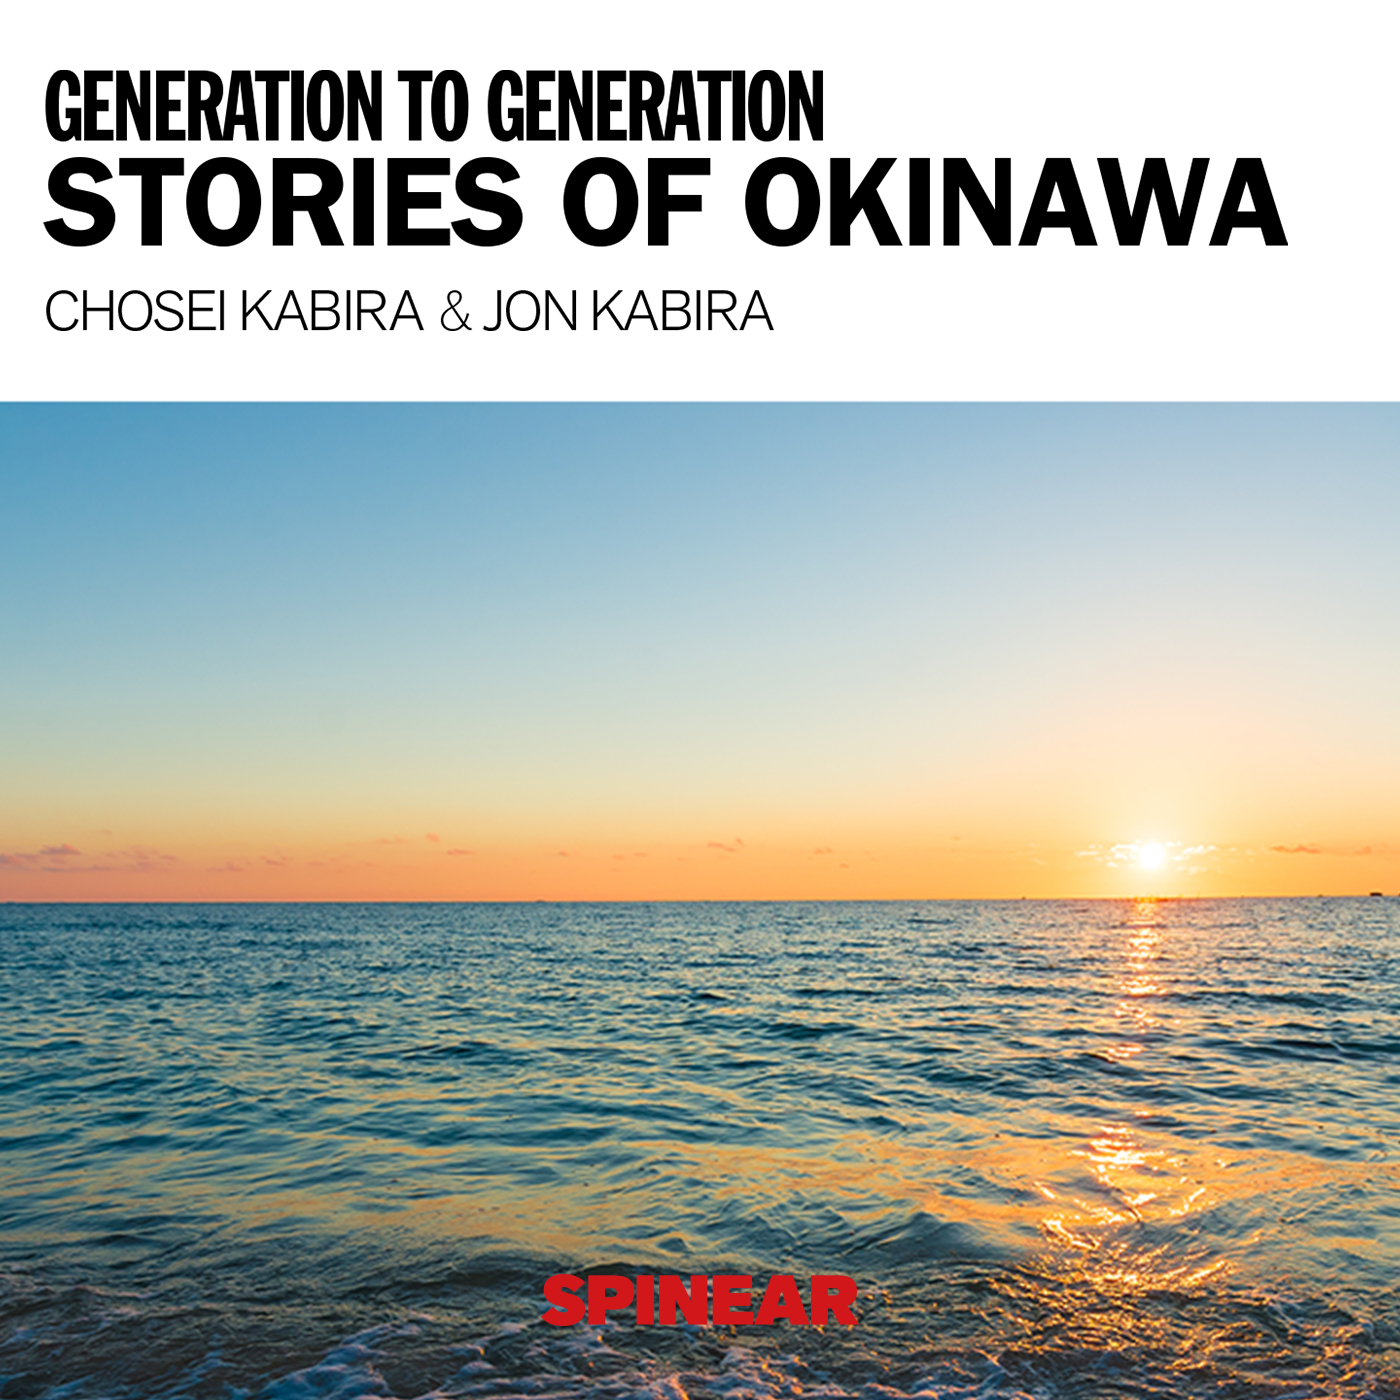 EPISODE 1 : 川平朝清が台湾にいた時の状況 - J-WAVE SELECTION GENERATION TO GENERATION ~STORIES OF OKINAWA~